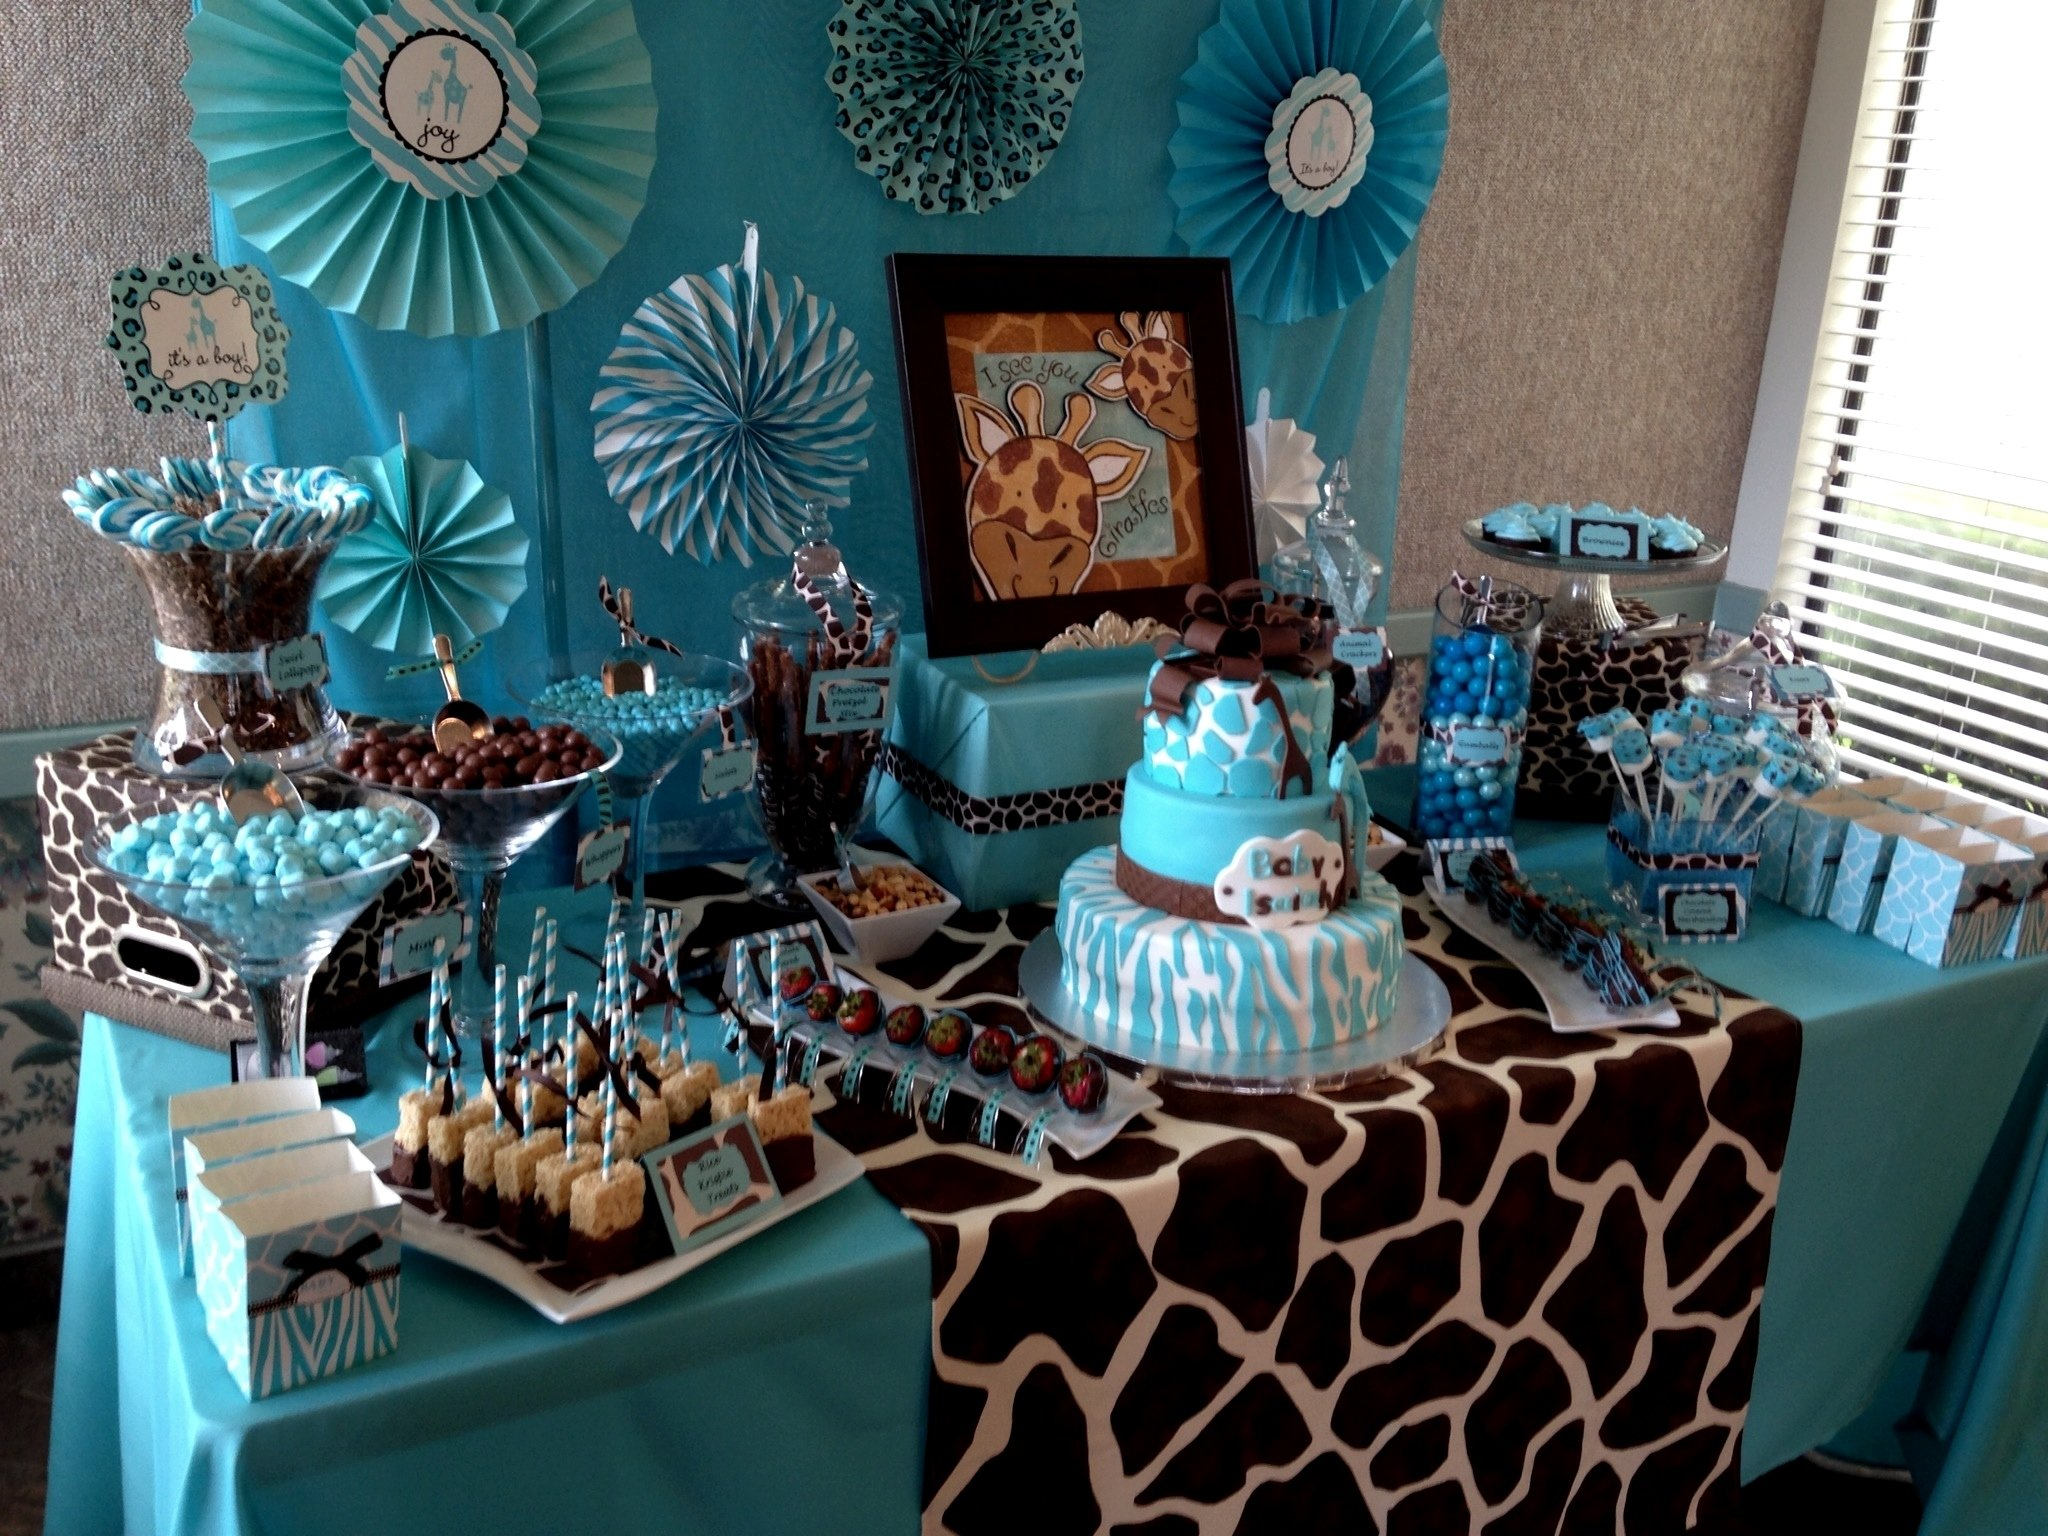 10 Fabulous Blue And Brown Baby Shower Ideas giraffe baby shower ideas baby ideas 2020